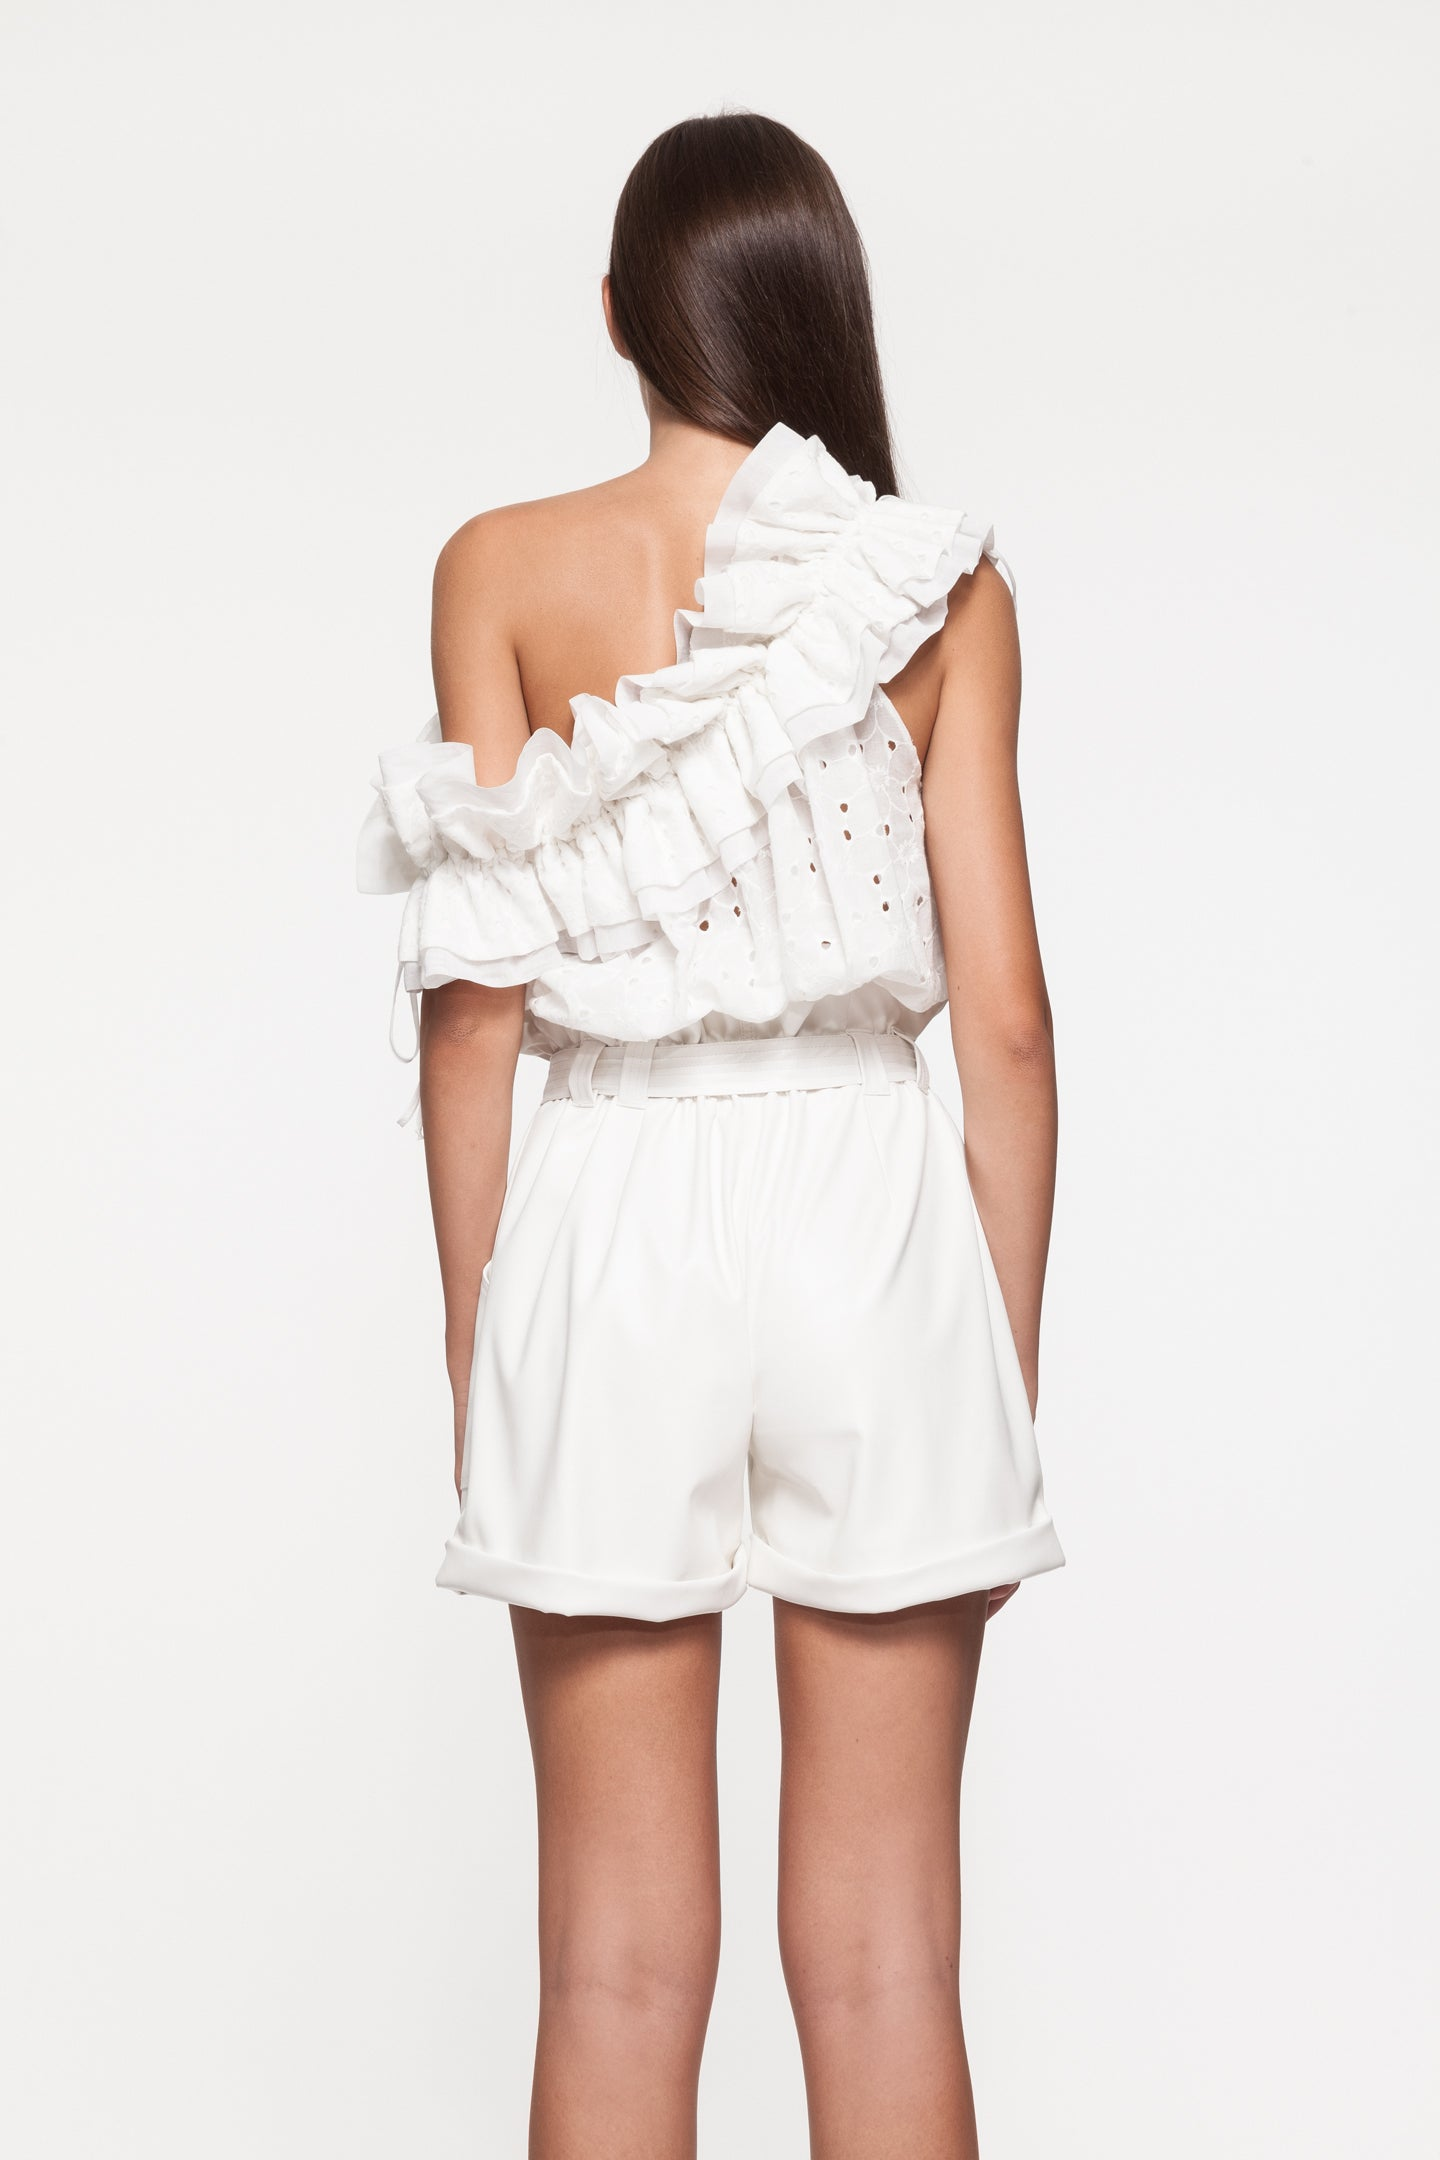 PAIGE White Ruffle Top